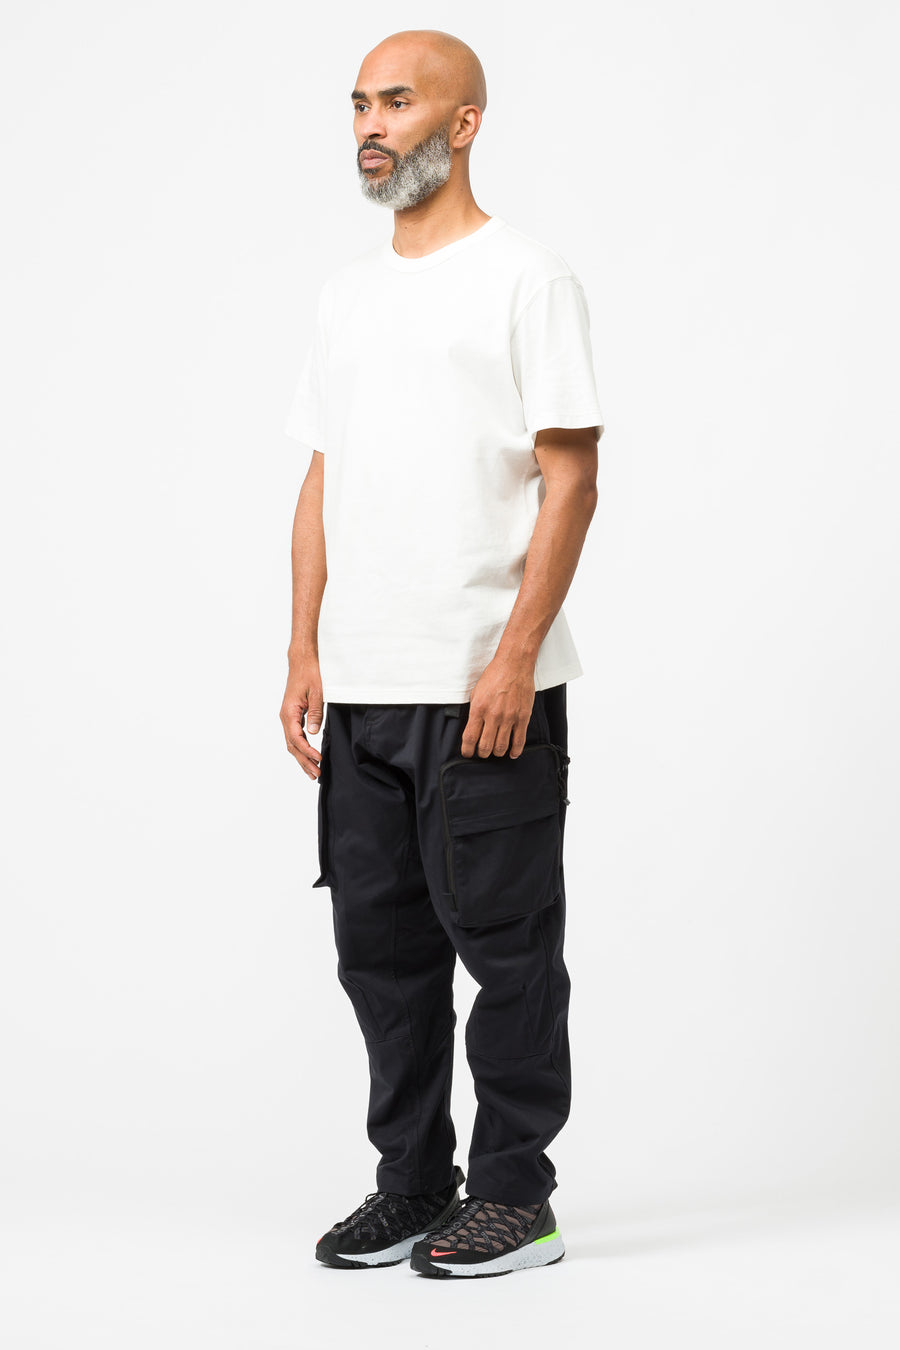 Nike ACG Woven Cargo Pants in Black - Notre